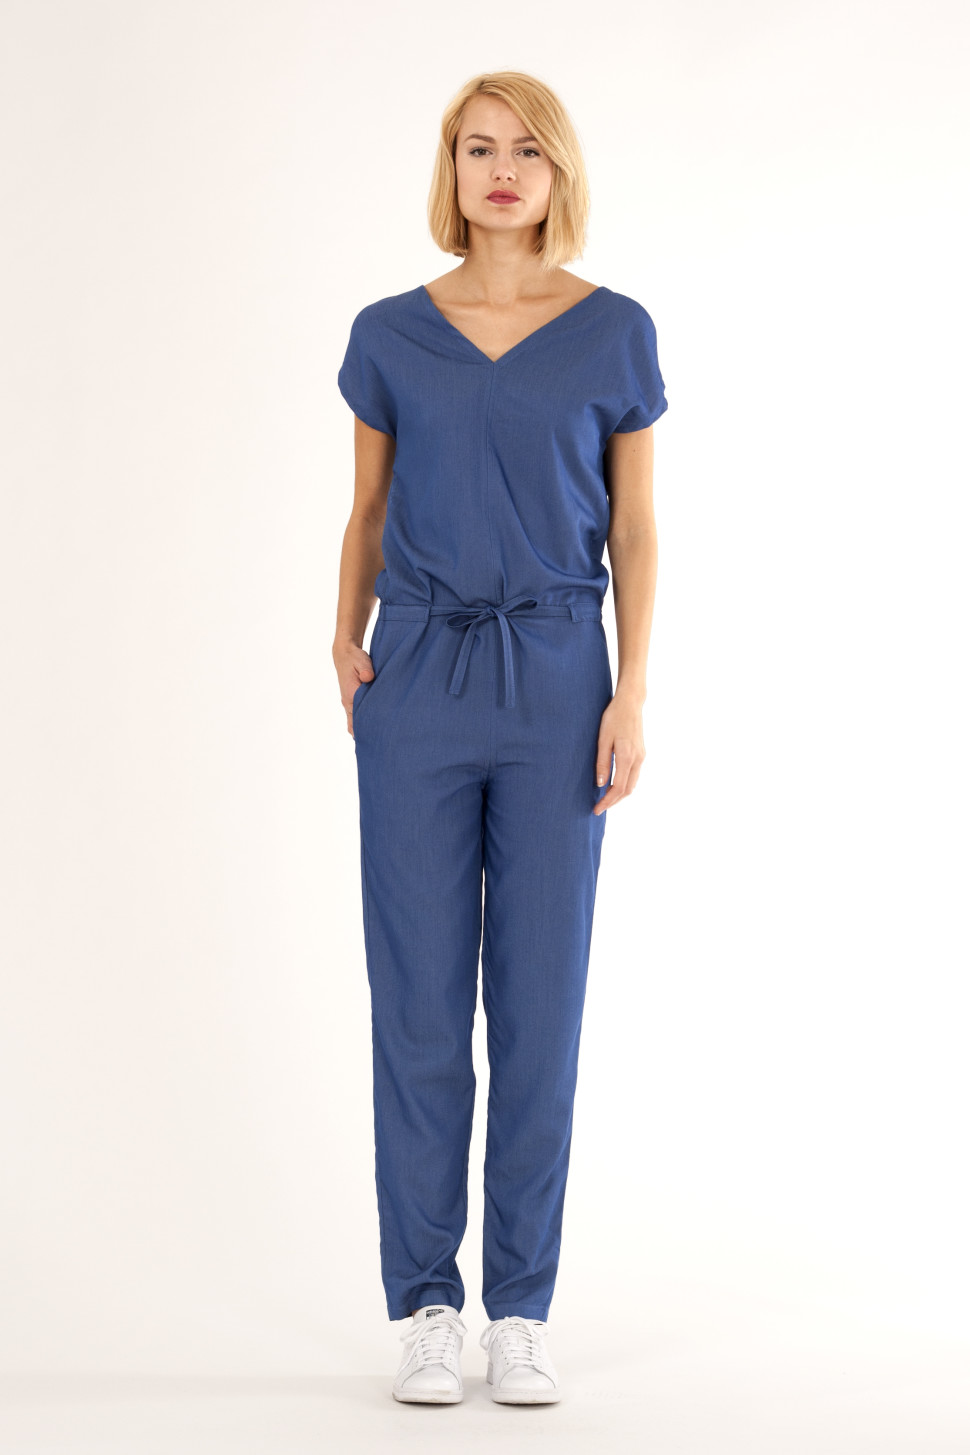 fbb19760938e Denim jumpsuit with very soft and comfortable feel. By Barbara van der  Zanden